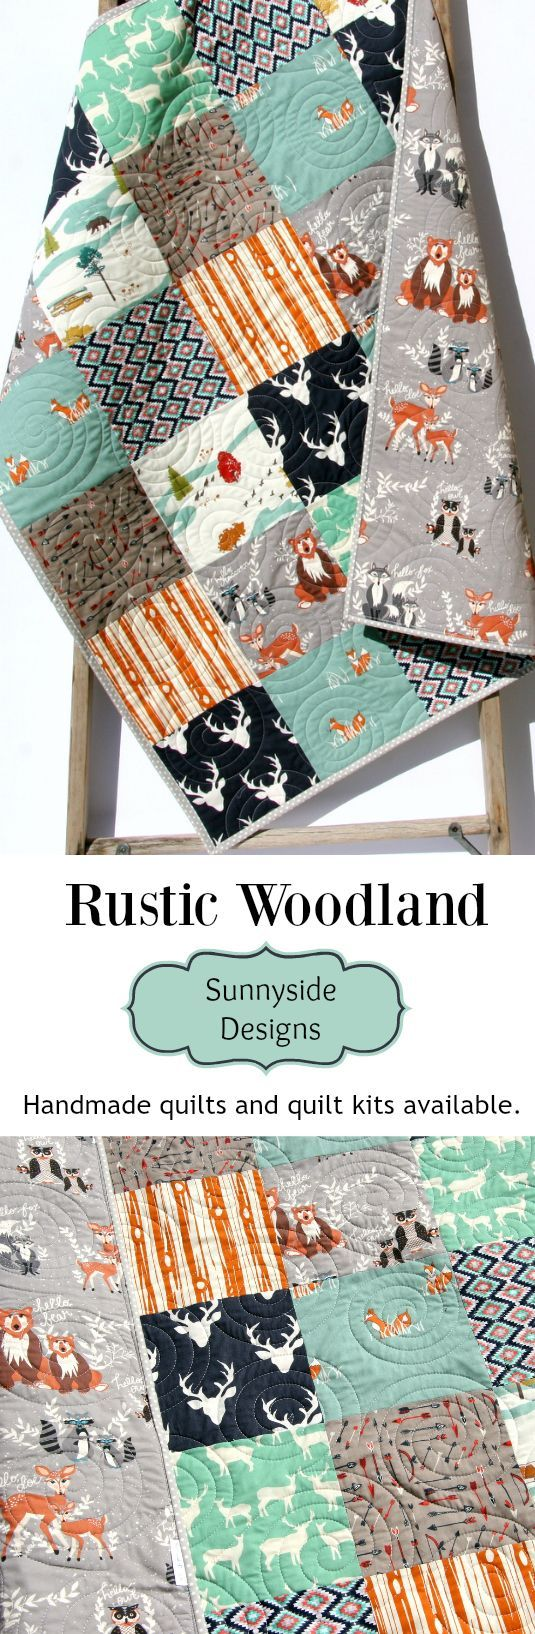 Rustic Woodland Handmade Quilt,  Forest Woodland Baby Blanket, Unique Crib Bedding, Baby or Toddler Size, Baby Quilt Kit, Toddler Quilt Kit, Throw or Twin Quilt Kit, DIY Craft Project by Sunnyside Designs